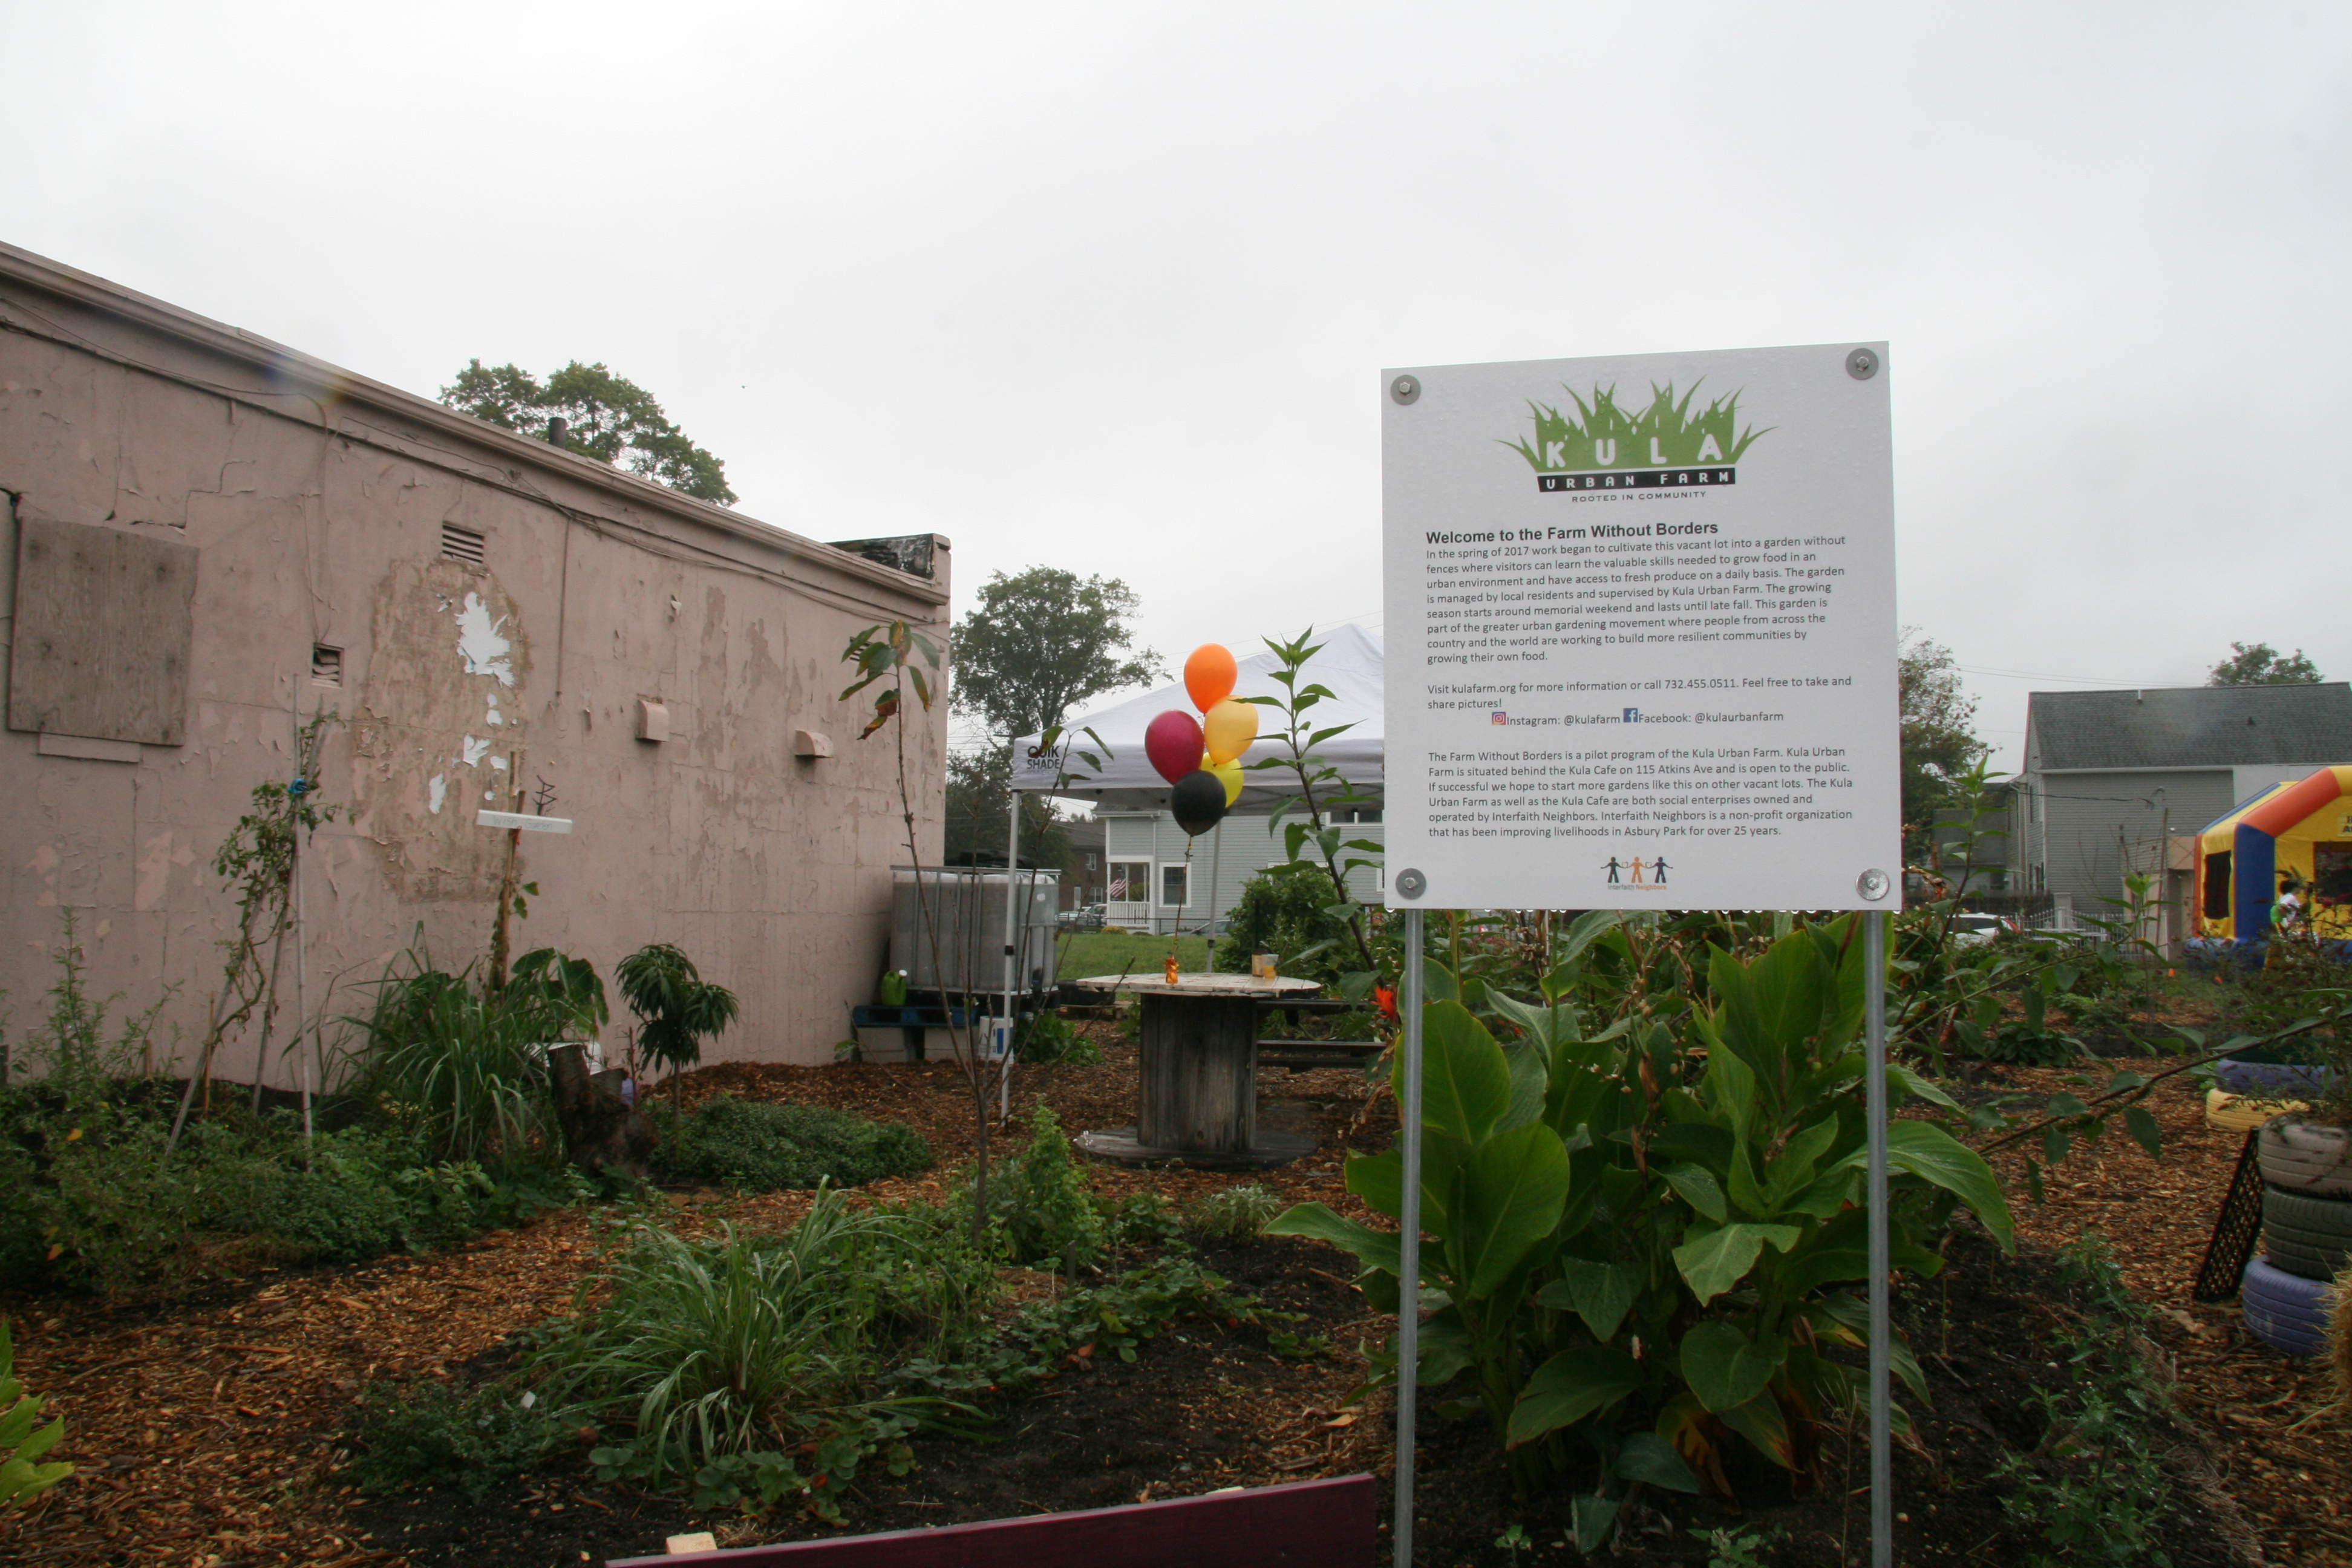 Kula Urban Farm's New Farm Without Borders On A Formerly Vacant Lot